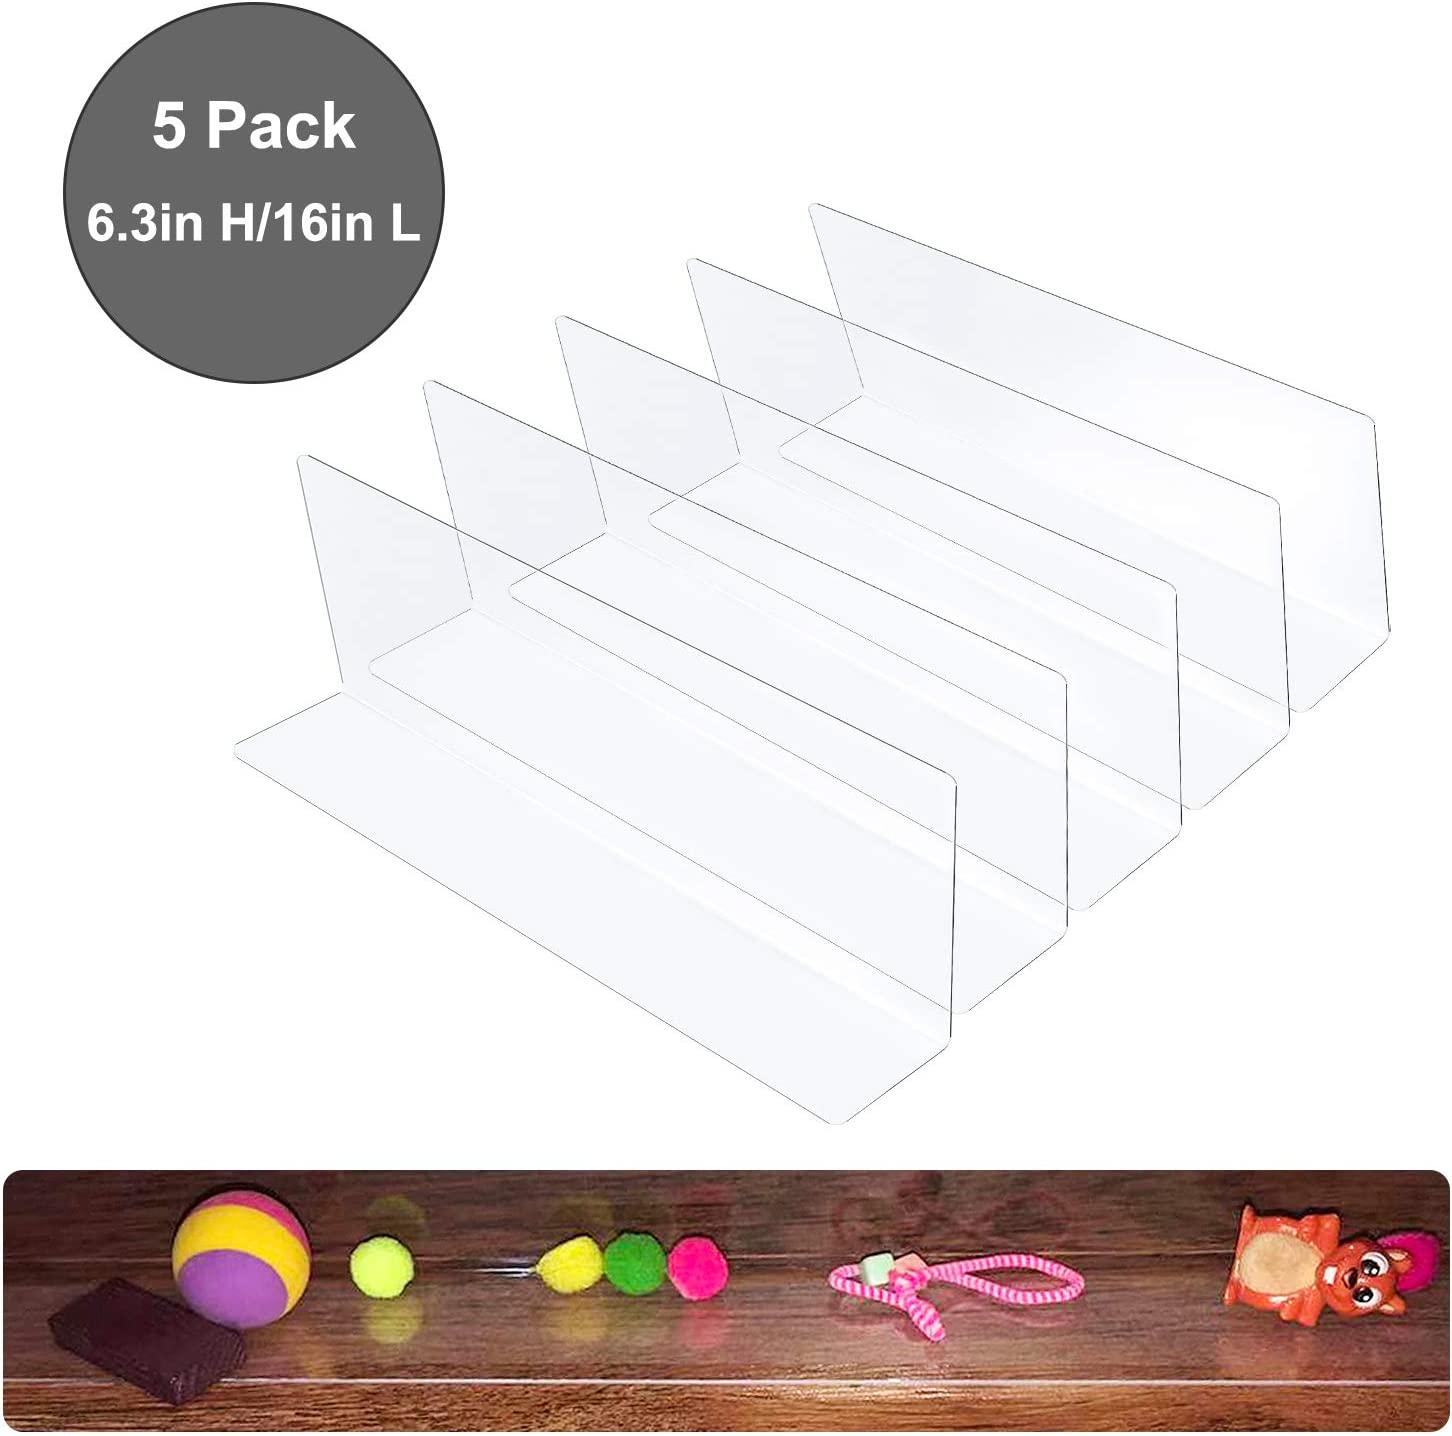 World Backyard Toy Blockers for Furniture - Clear Thin PVC Gap Bumper Under Couch, Sofa, Bed, Cabinet to Stop Small Things Going into. (X-Large 6.3'' High)